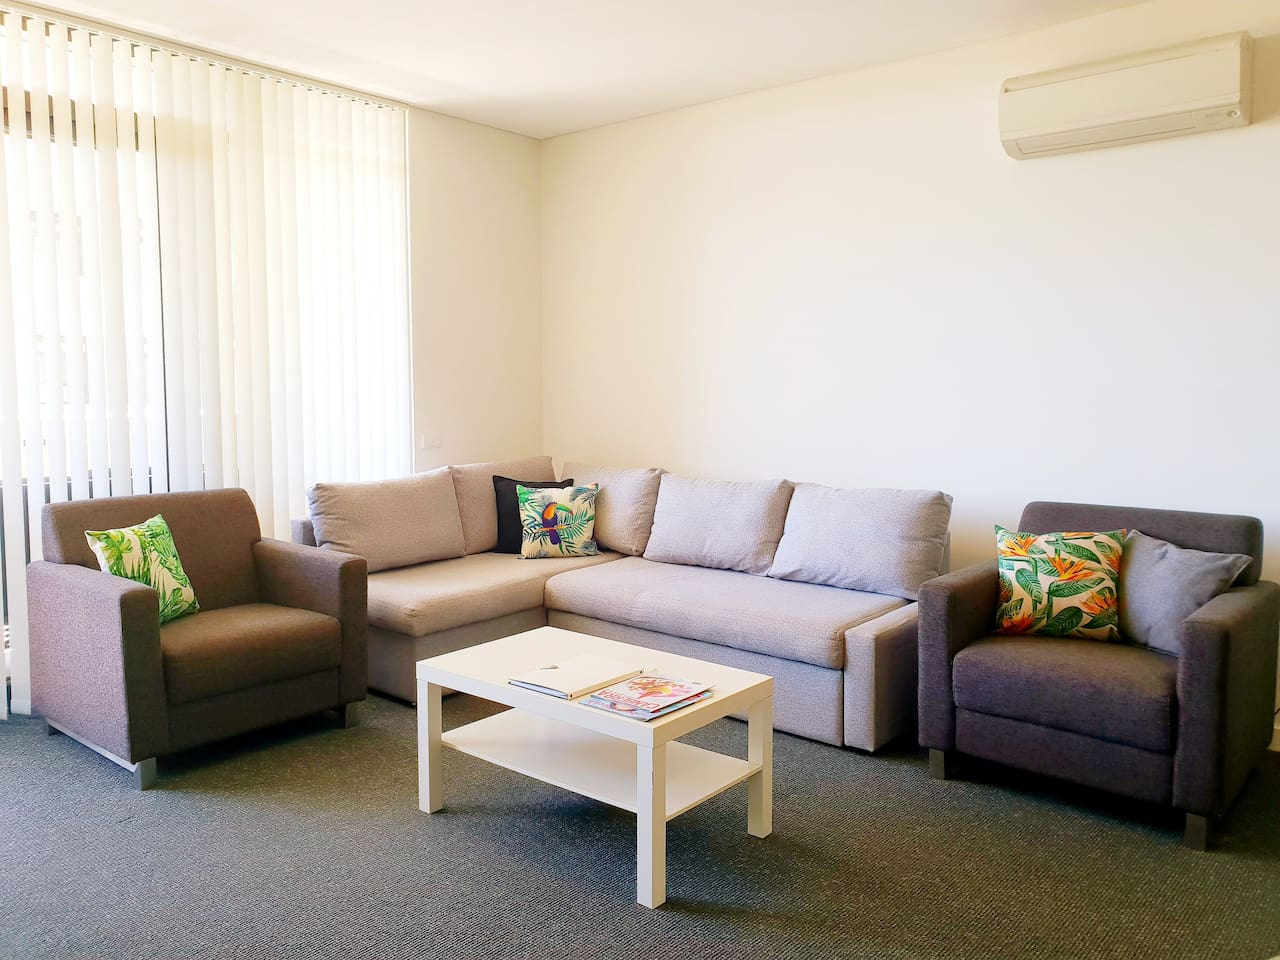 Spacious lounge room with plenty of seating. The corner lounge suite pulls out into a double bed for additional guests. Pillows and linen are supplied if the sofabed is requested.